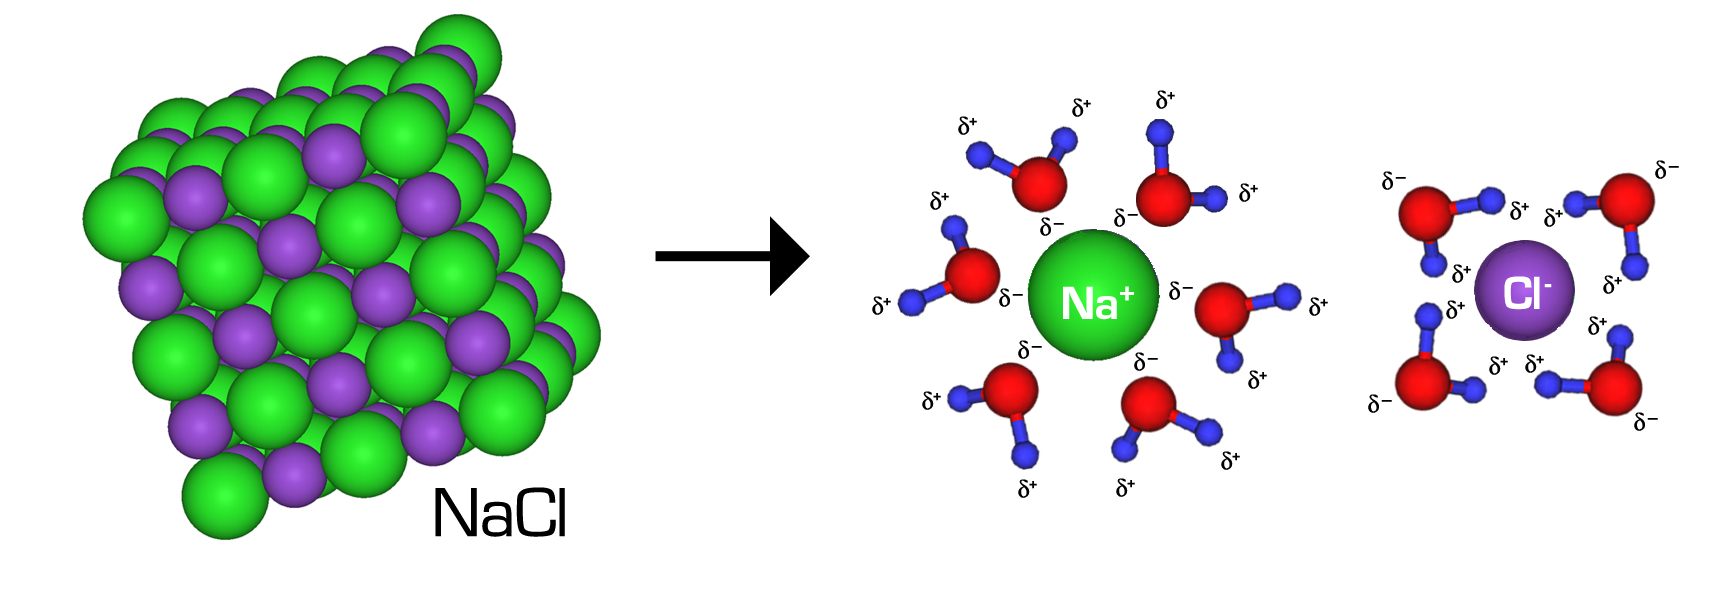 hight resolution of figure 3 nacl in water the ionic bonds between the na and cl ions are broken and the ions separate the surrounding water molecules form hydrogen bonds